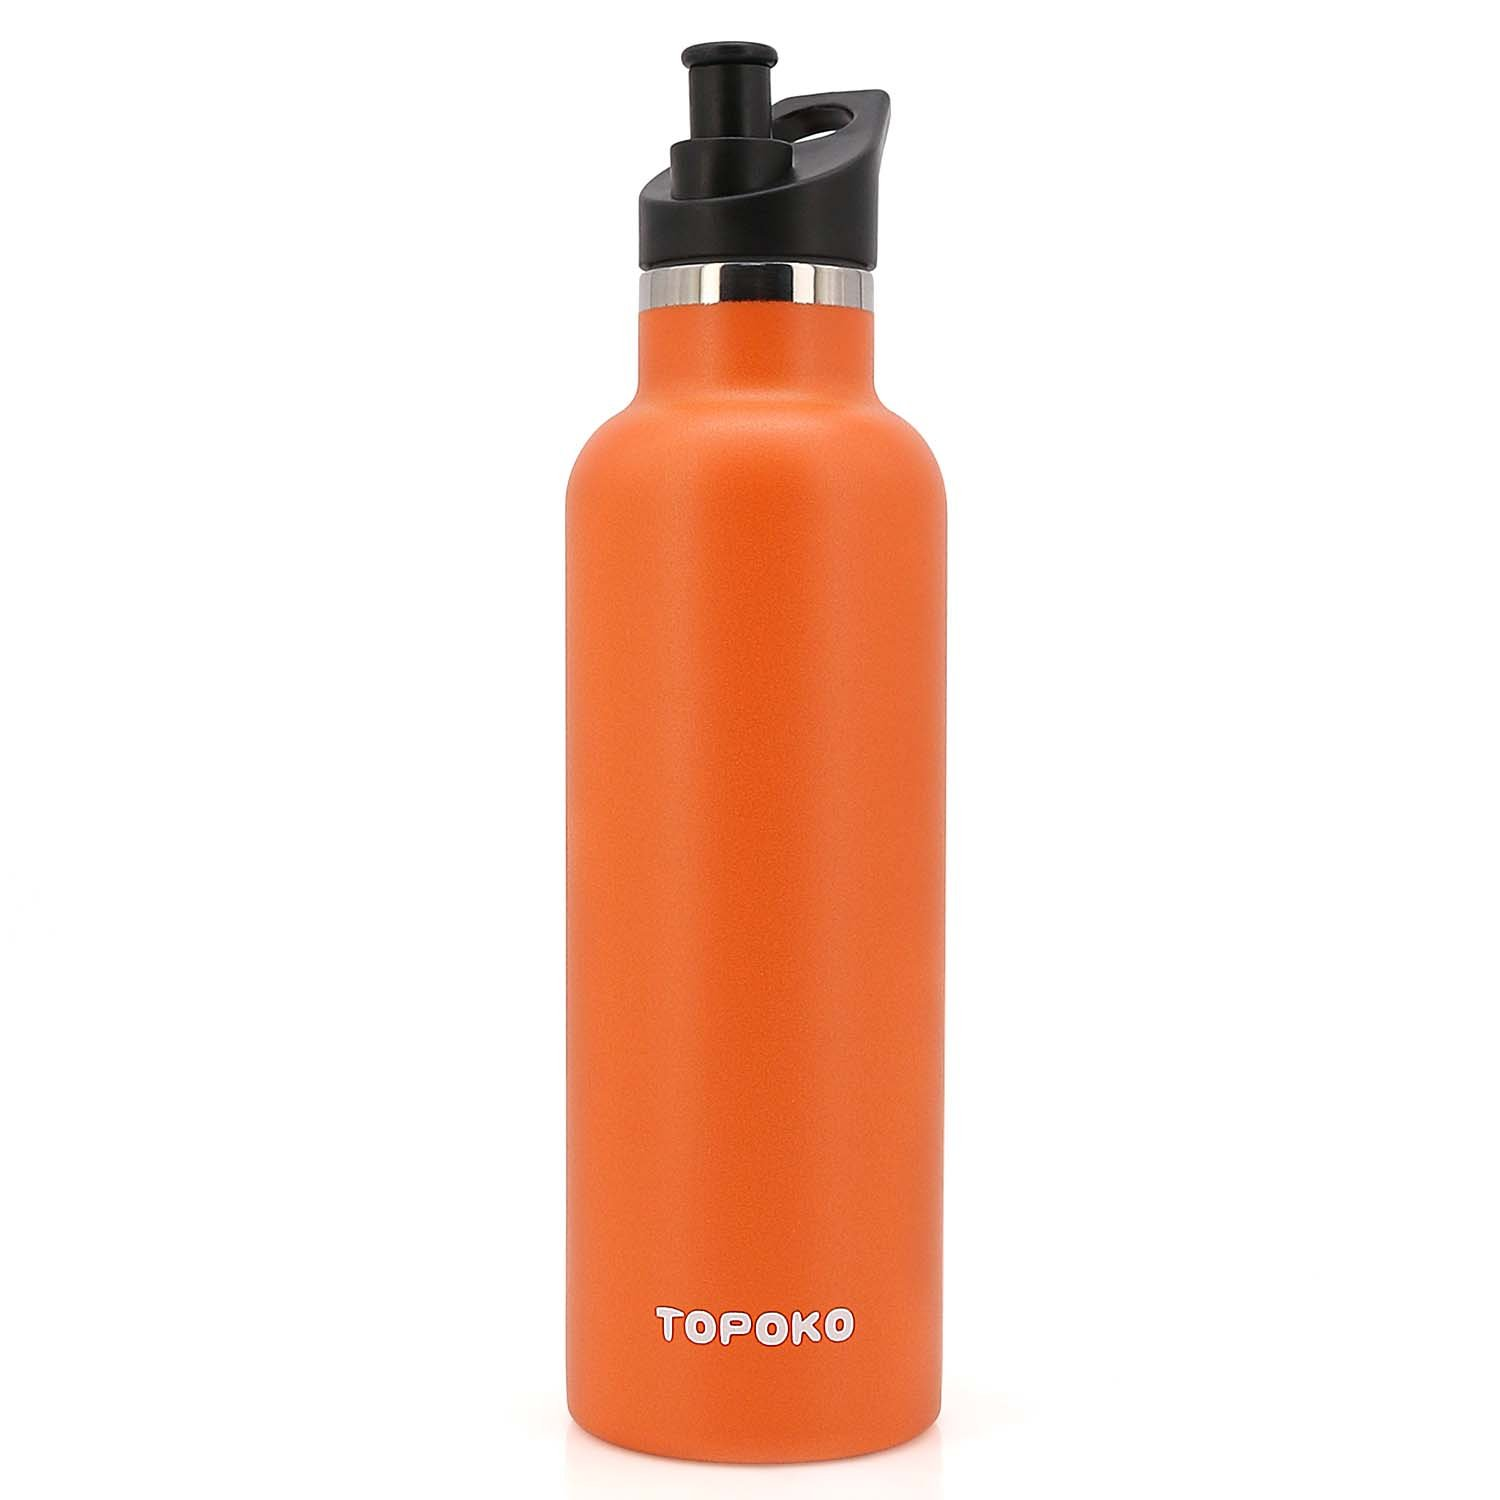 TOPOKO 25 OZ Double Wall Stainless Steel Water Bottle, Straw Lid with Handle or Bite Valve Top, Vacuum Insulated, Sweat Proof, Leak Proof Thermos Standard Mouth. (Orange)